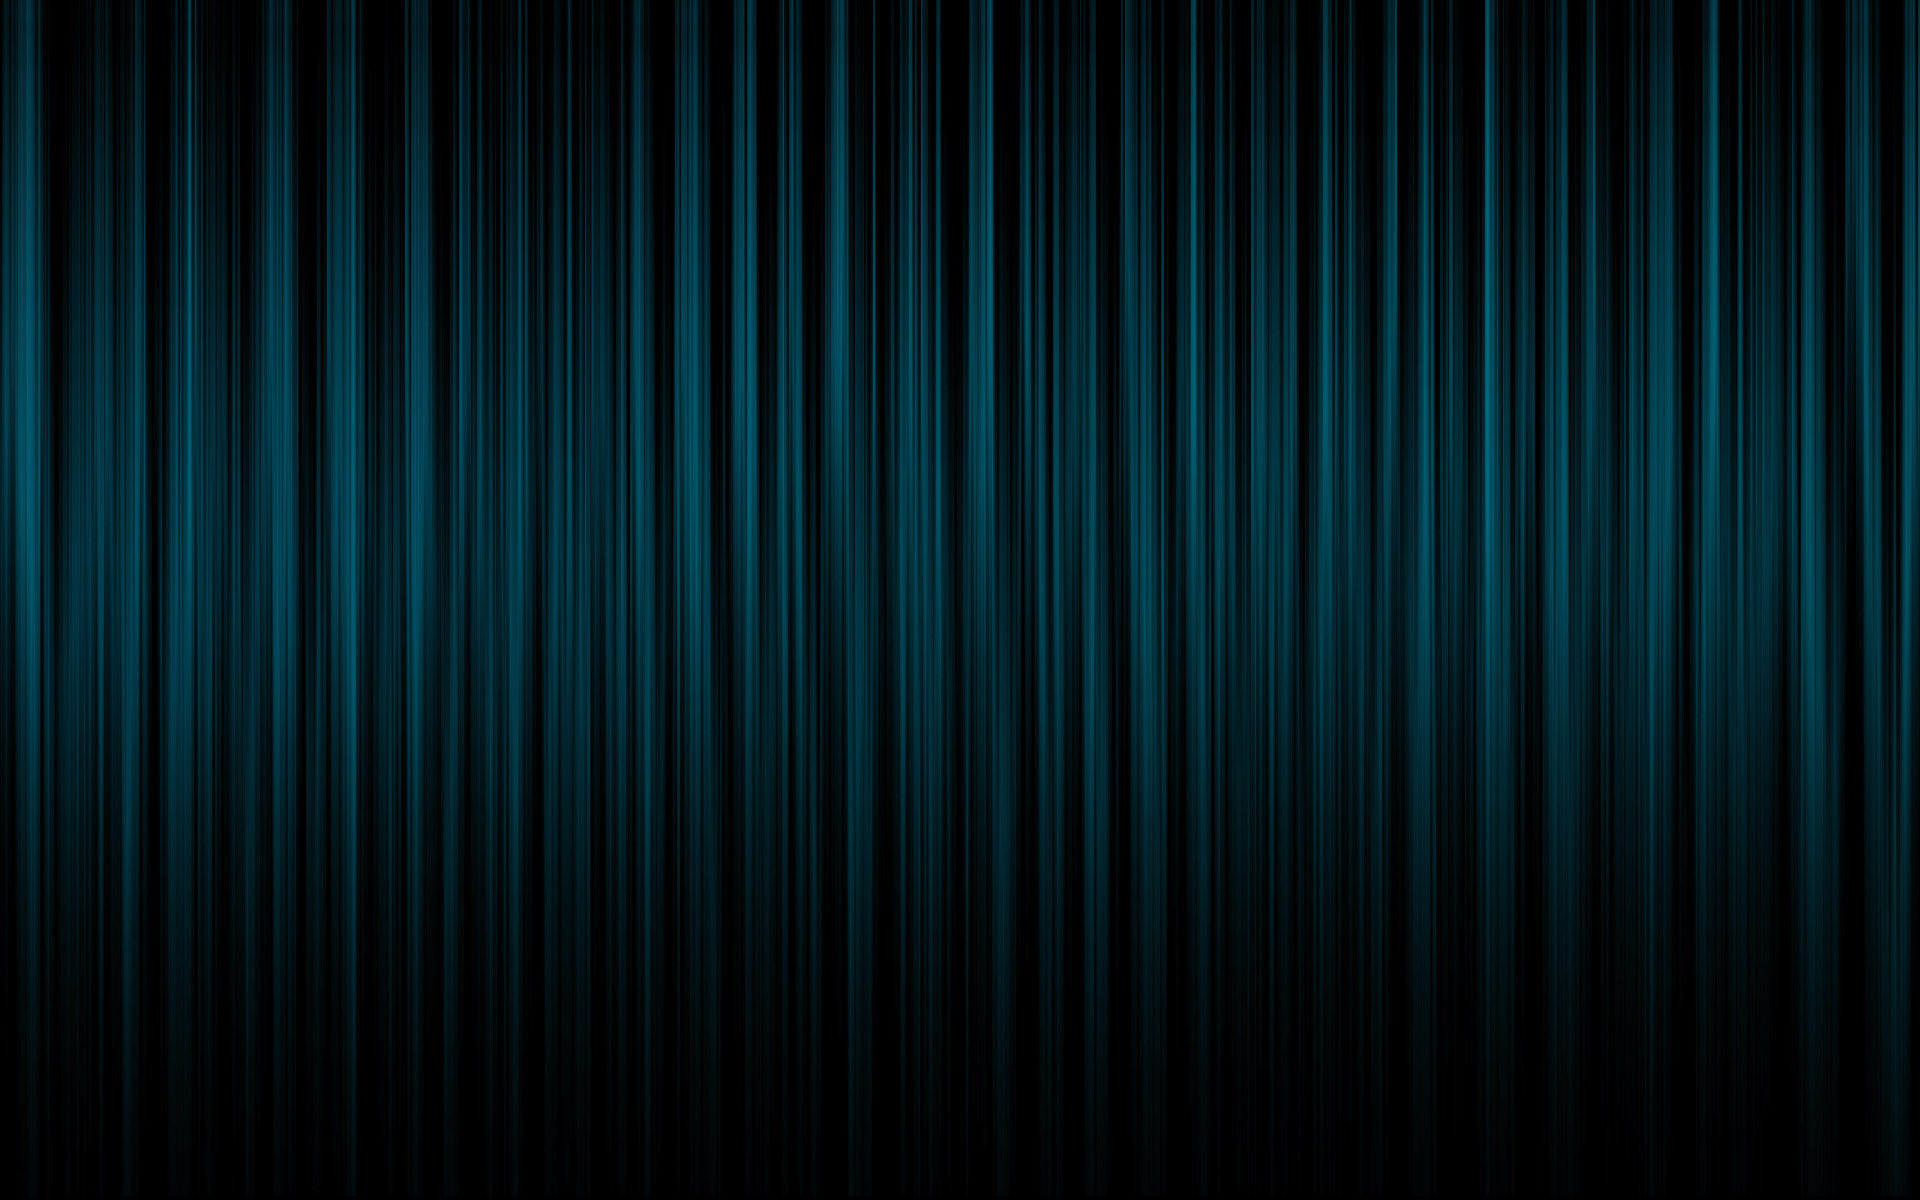 Sea Green Lining Curtain With Black Background 3d Gaming Hd